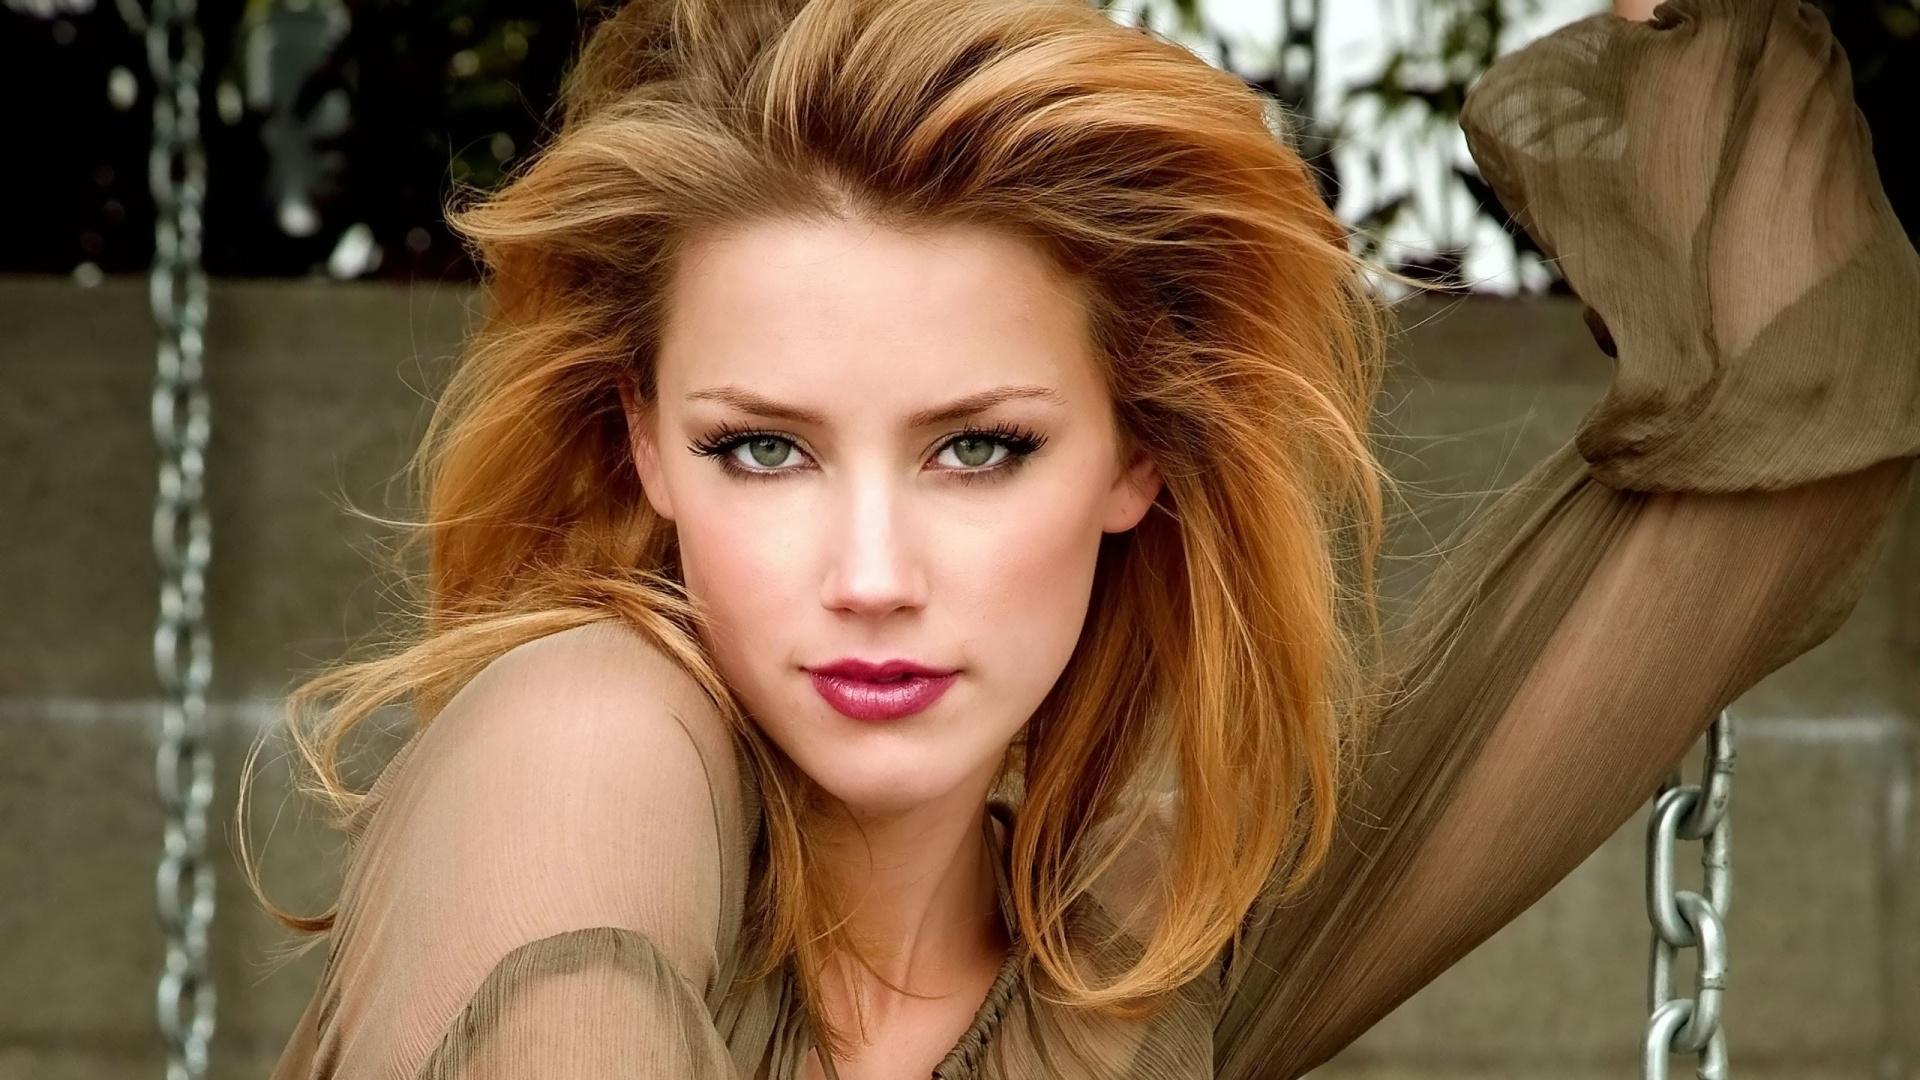 amber heard wallpapers hd A3